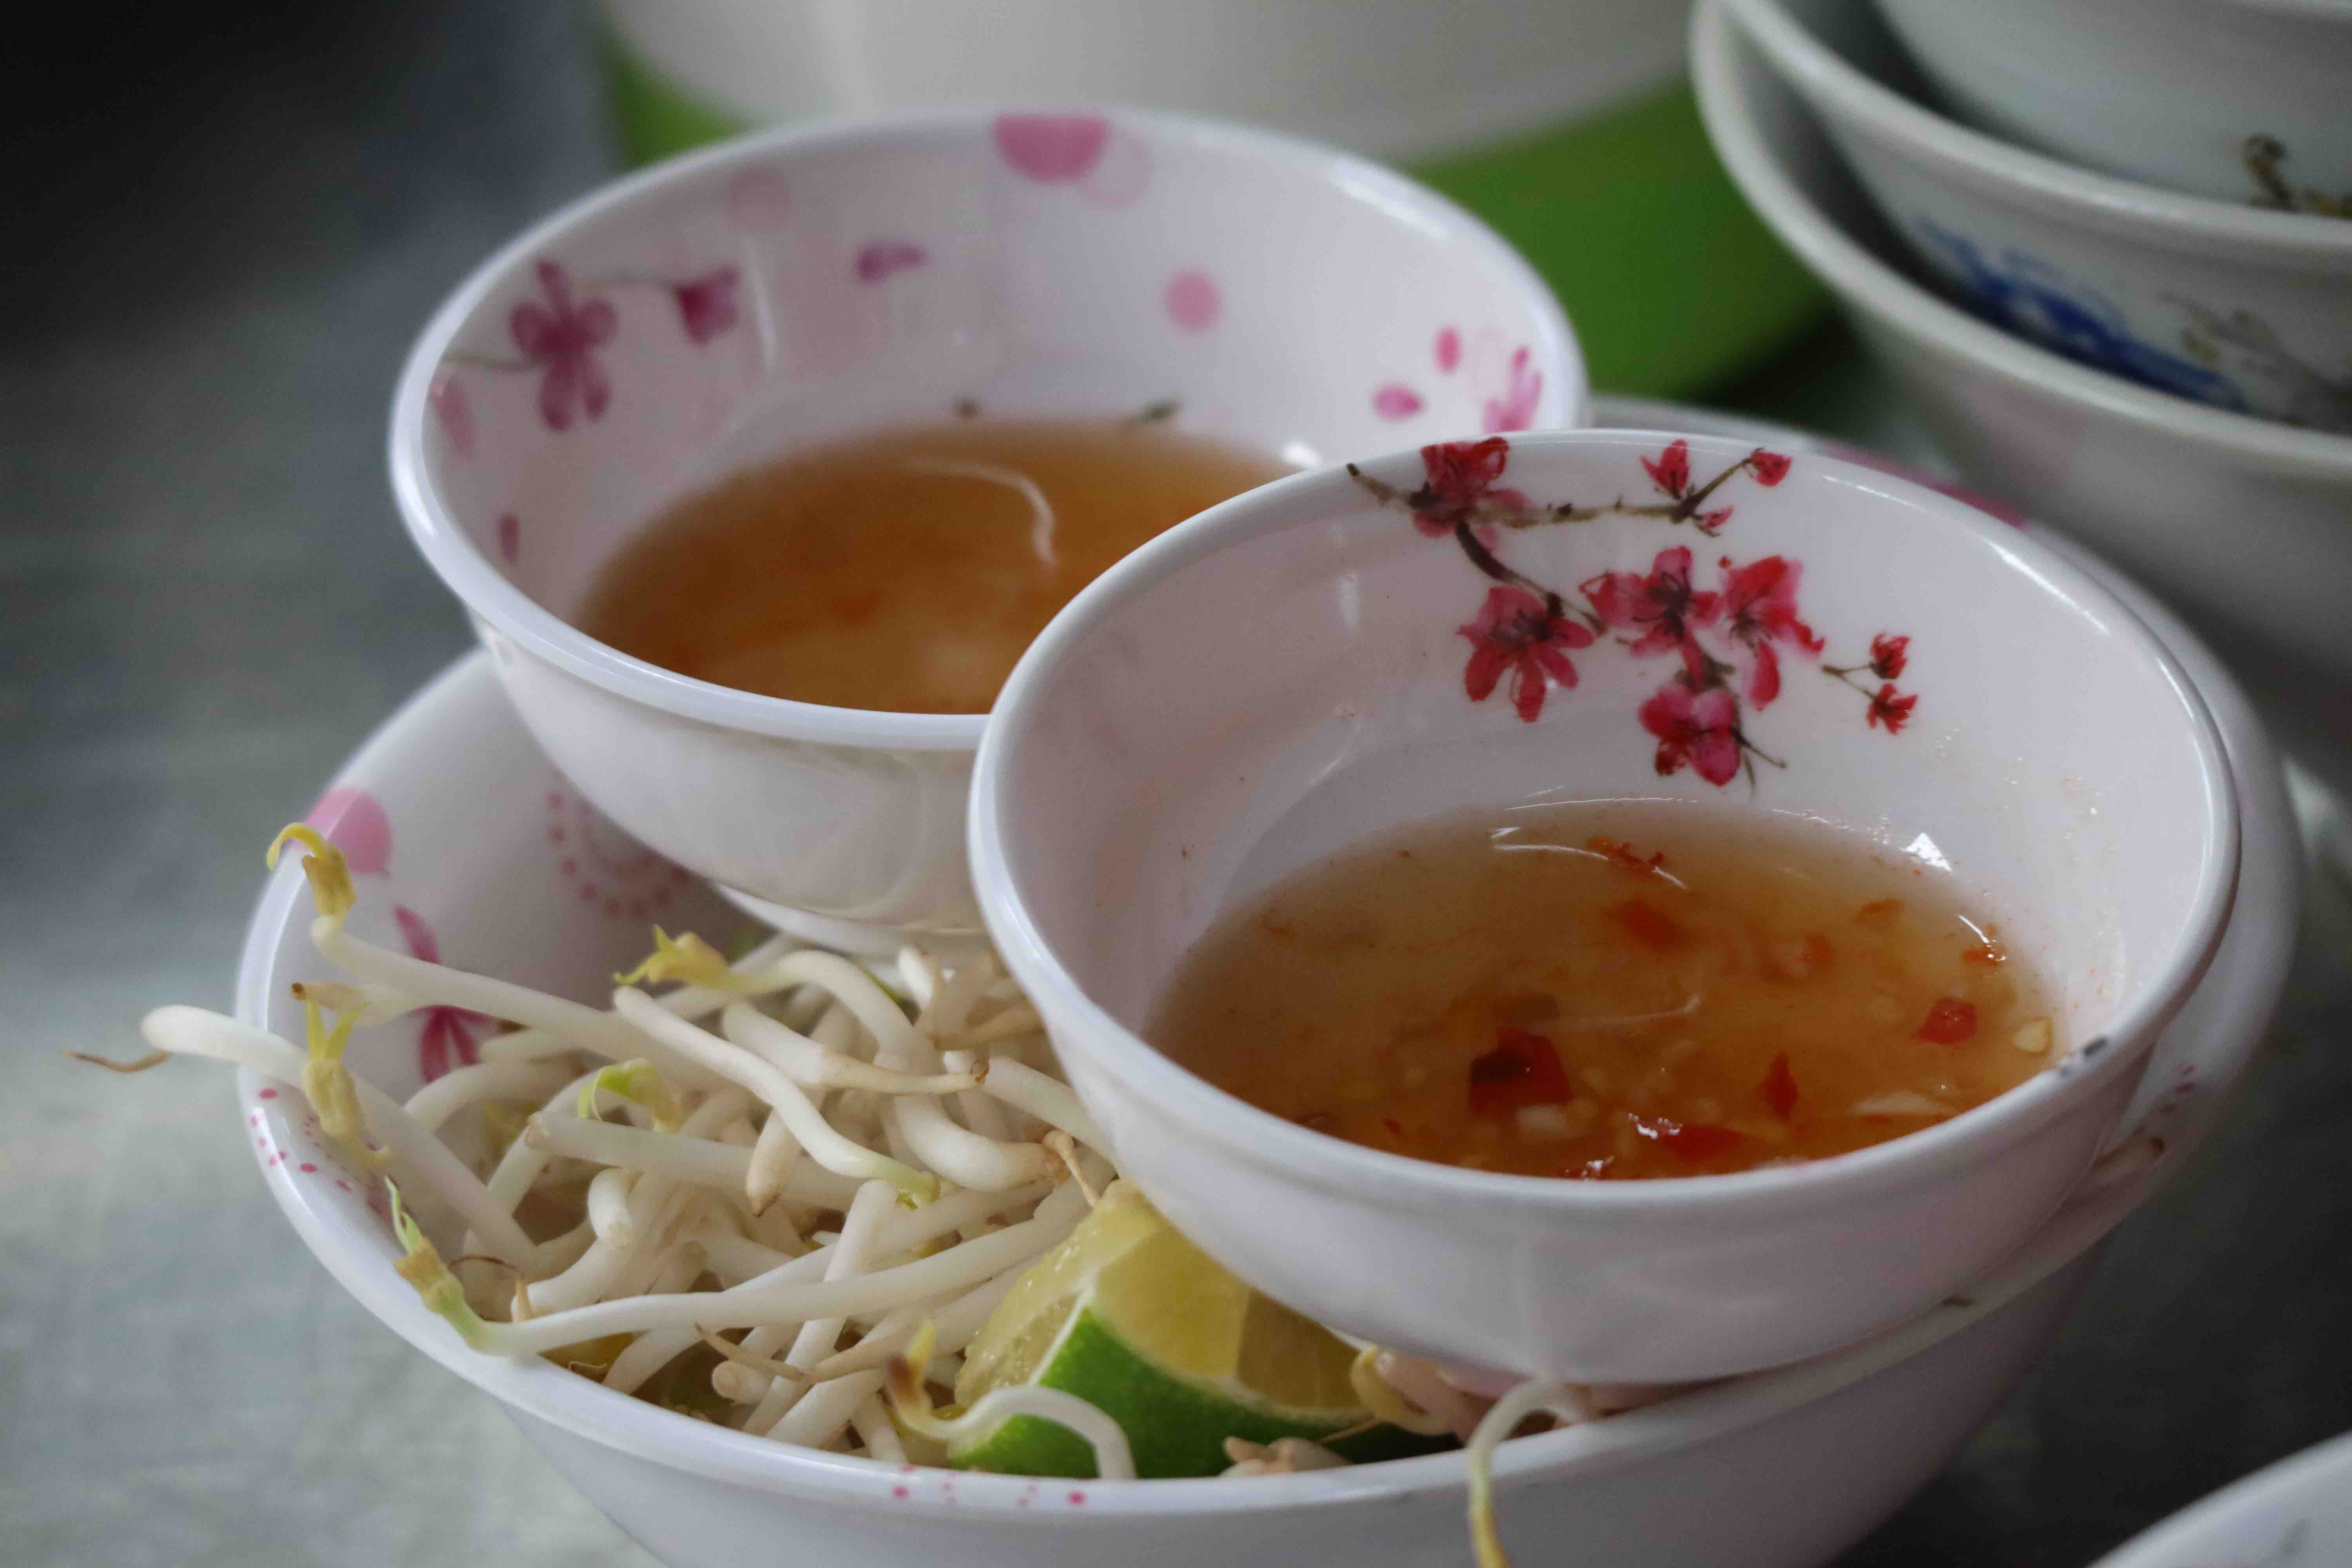 A portion of porridge at Chao Long Ba Ut comes with homemade dipping sauces and a bowl of vegetables. Photo: Nam Vuong / Tuoi Tre